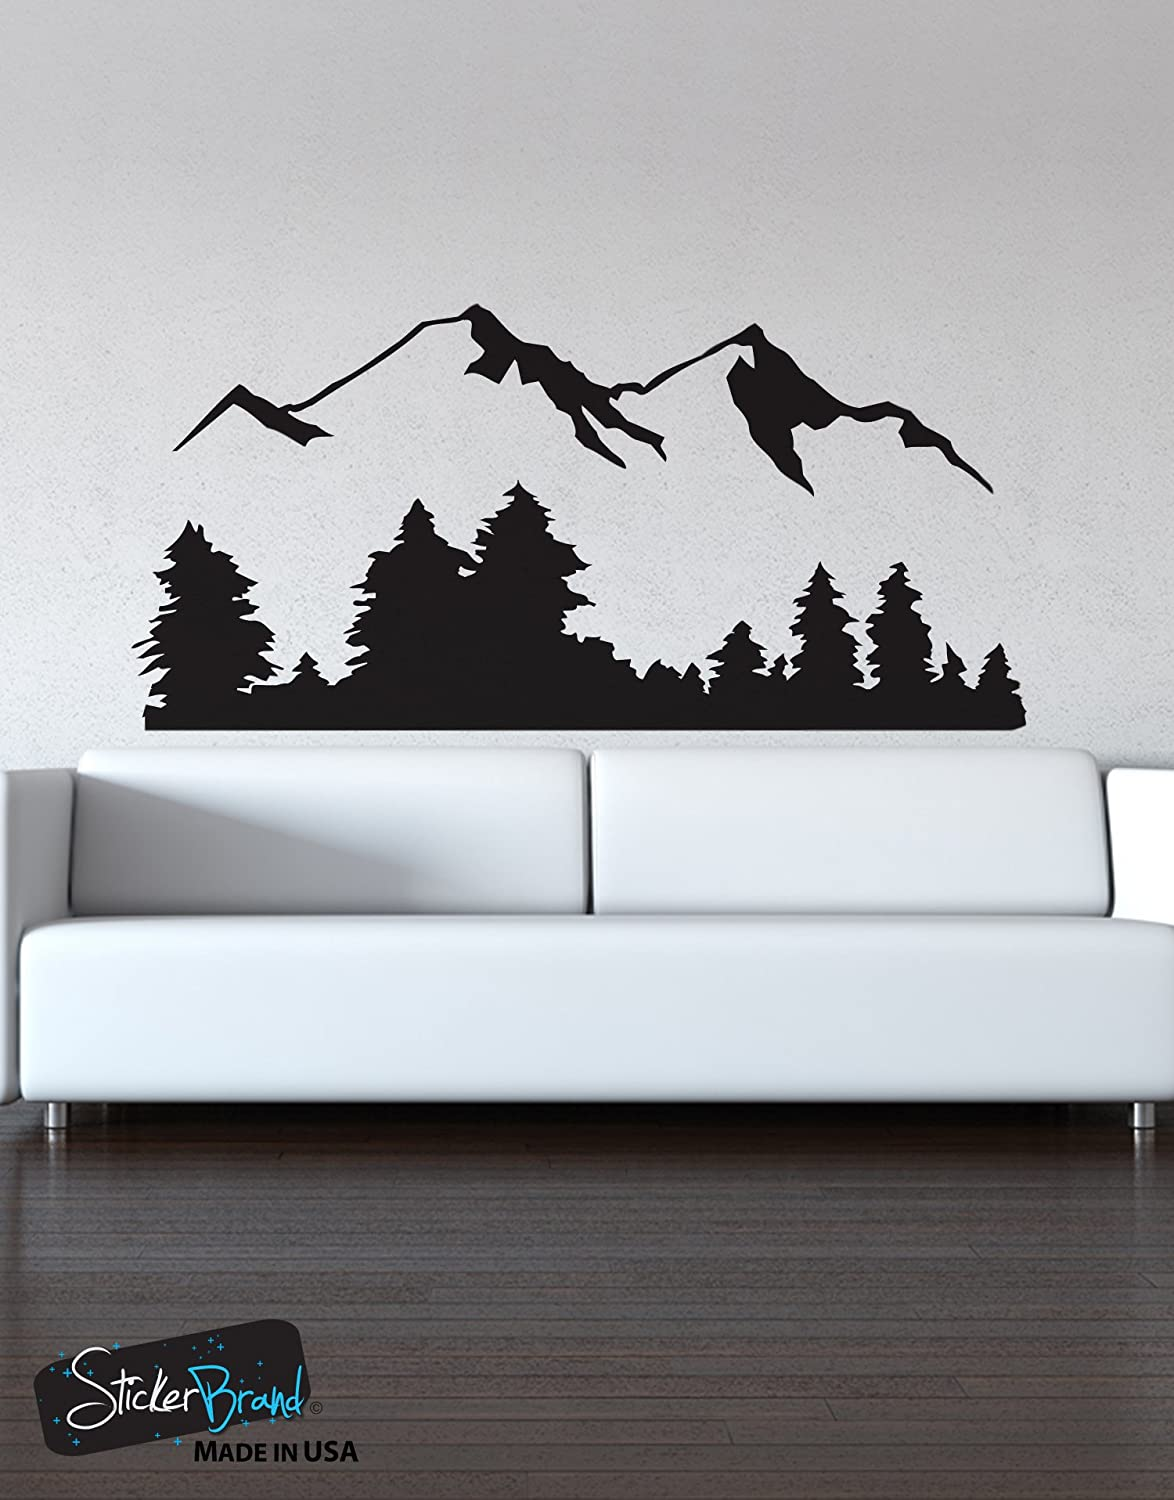 Amazon stickerbrand landscapes vinyl wall art snowy mountain amazon stickerbrand landscapes vinyl wall art snowy mountain view wall decal sticker 194a easy to apply removable home kitchen amipublicfo Choice Image